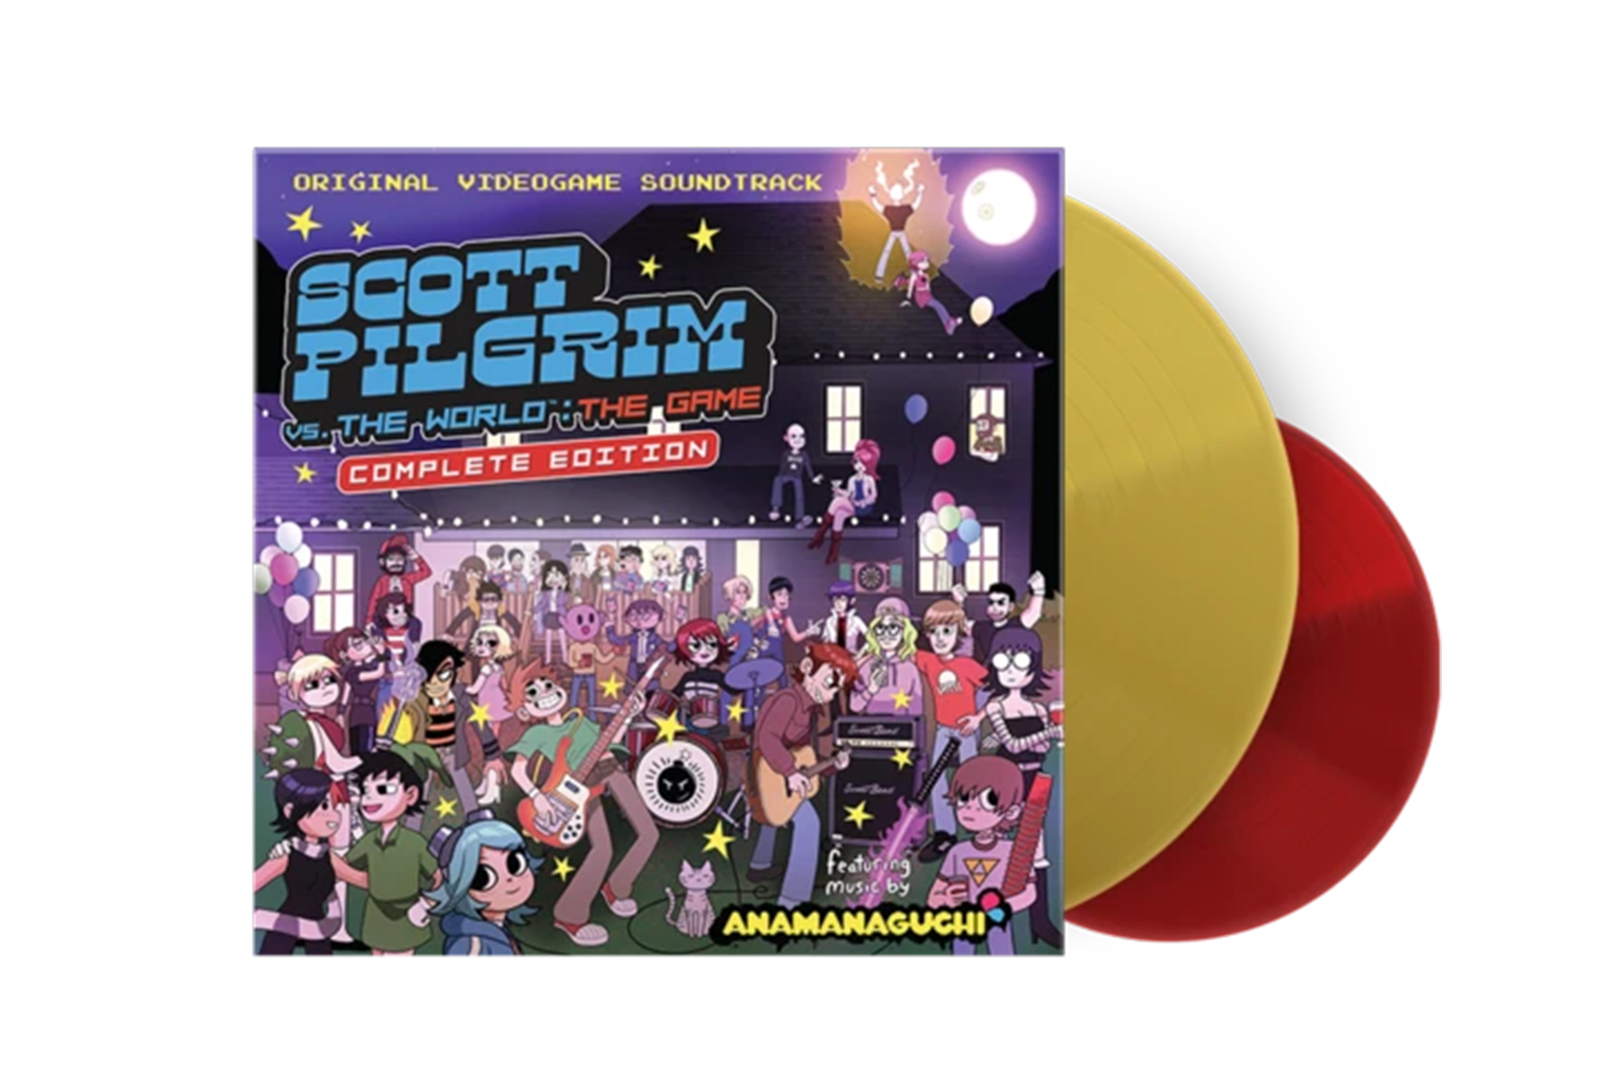 Scott Pilgrim Vs. The World video game soundtrack released in new vinyl edition